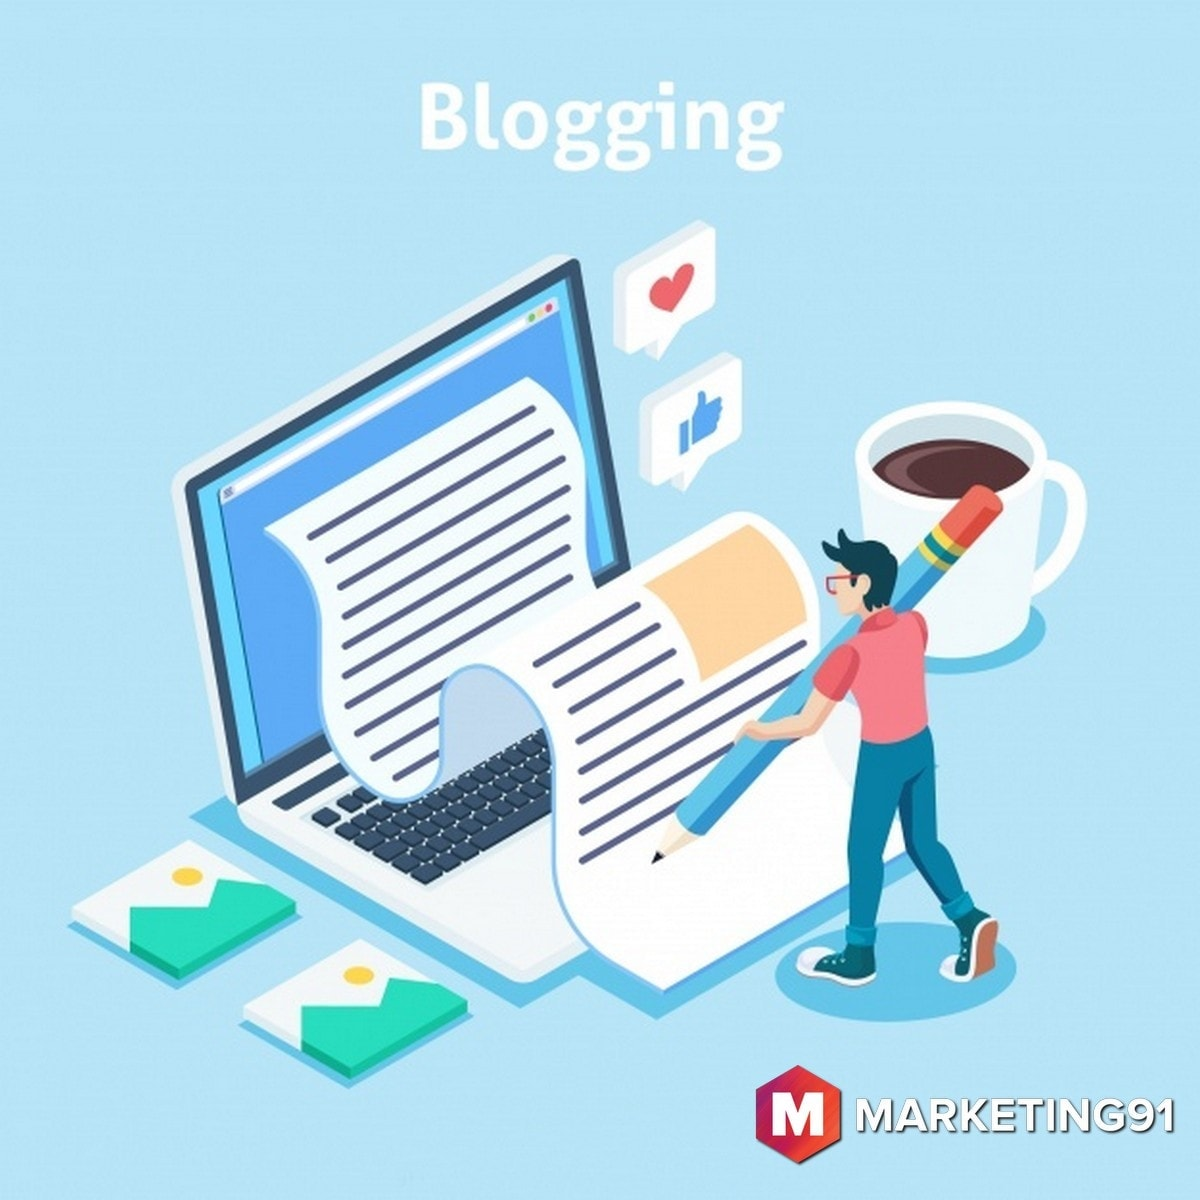 Features of Blog you need to know to become a Successful Blogger